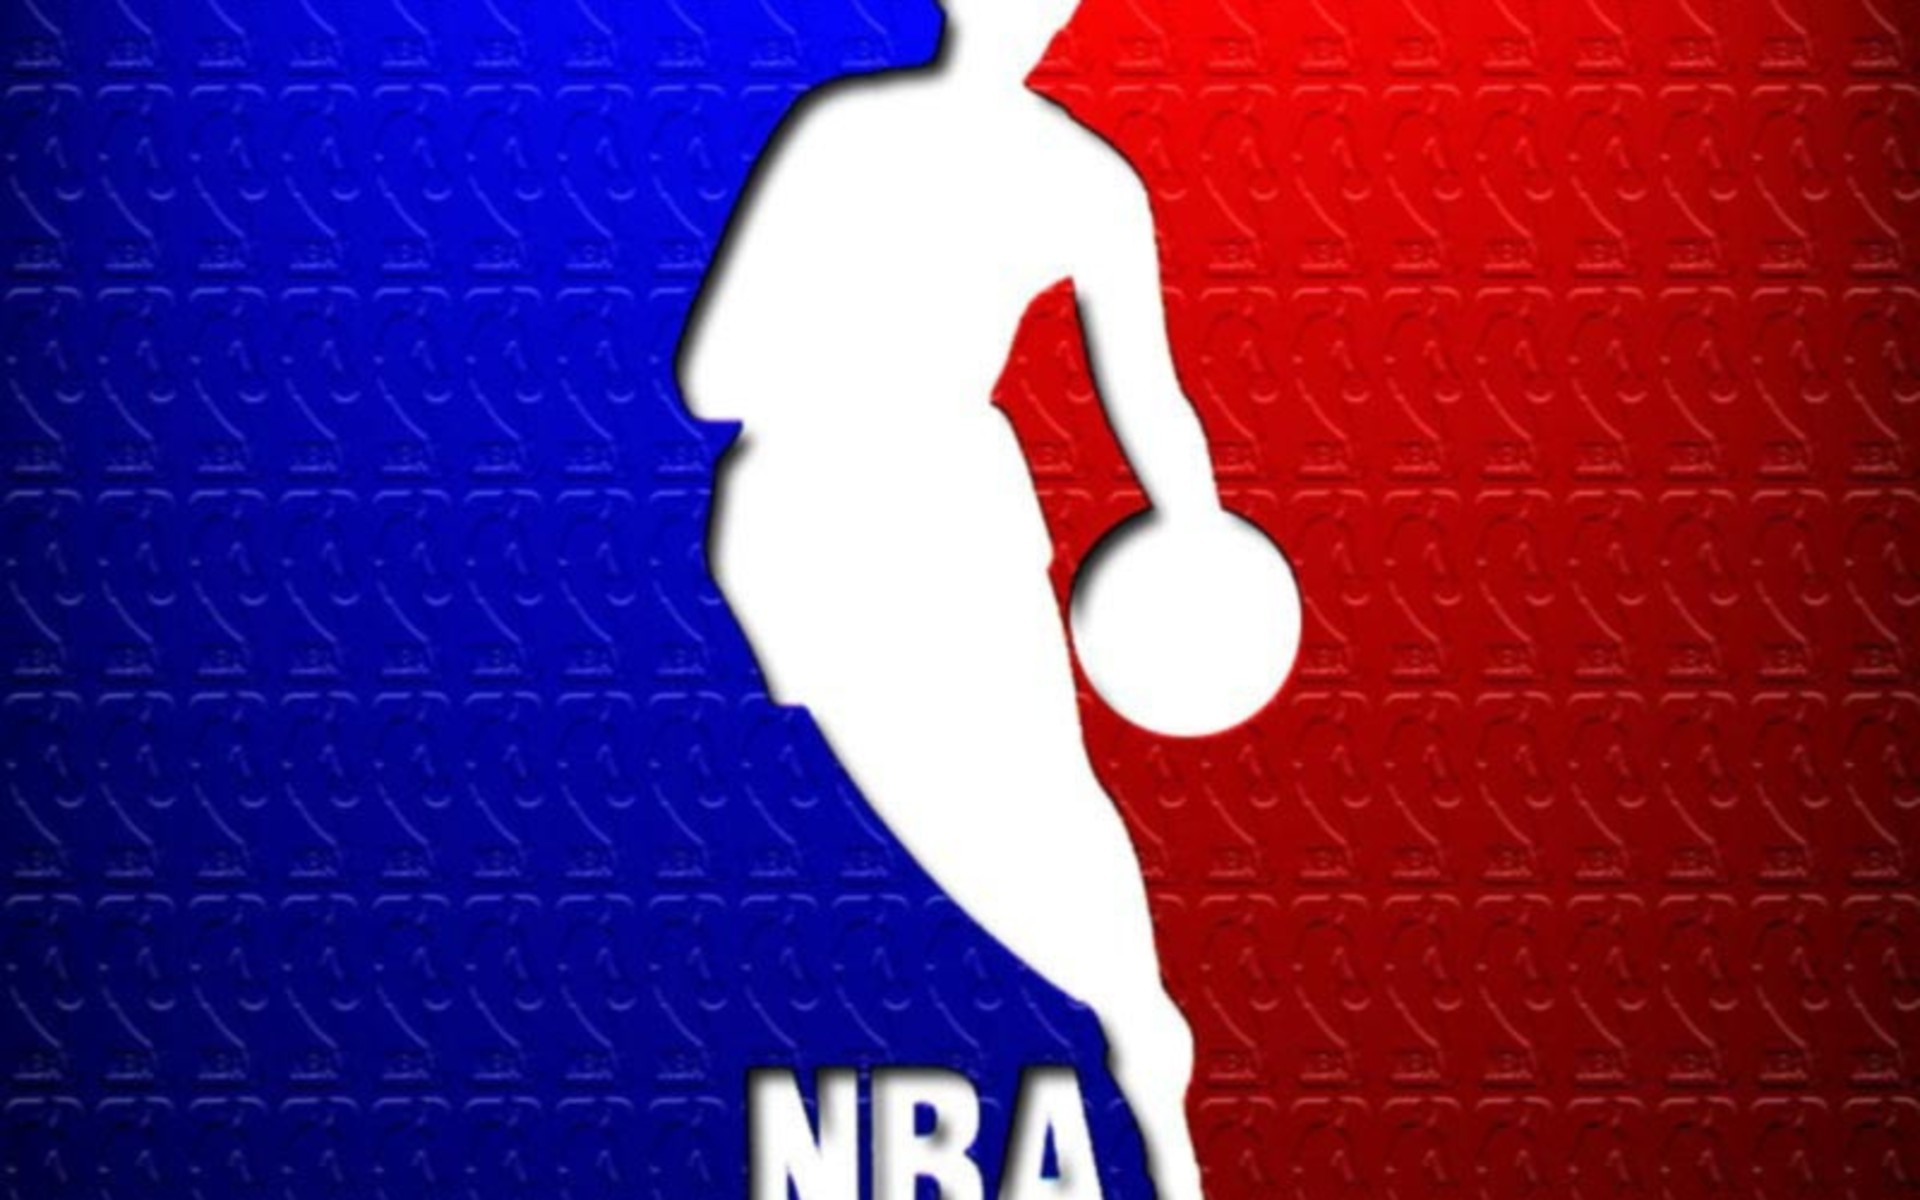 Nba Wallpapers Hd Collection  1920x1200